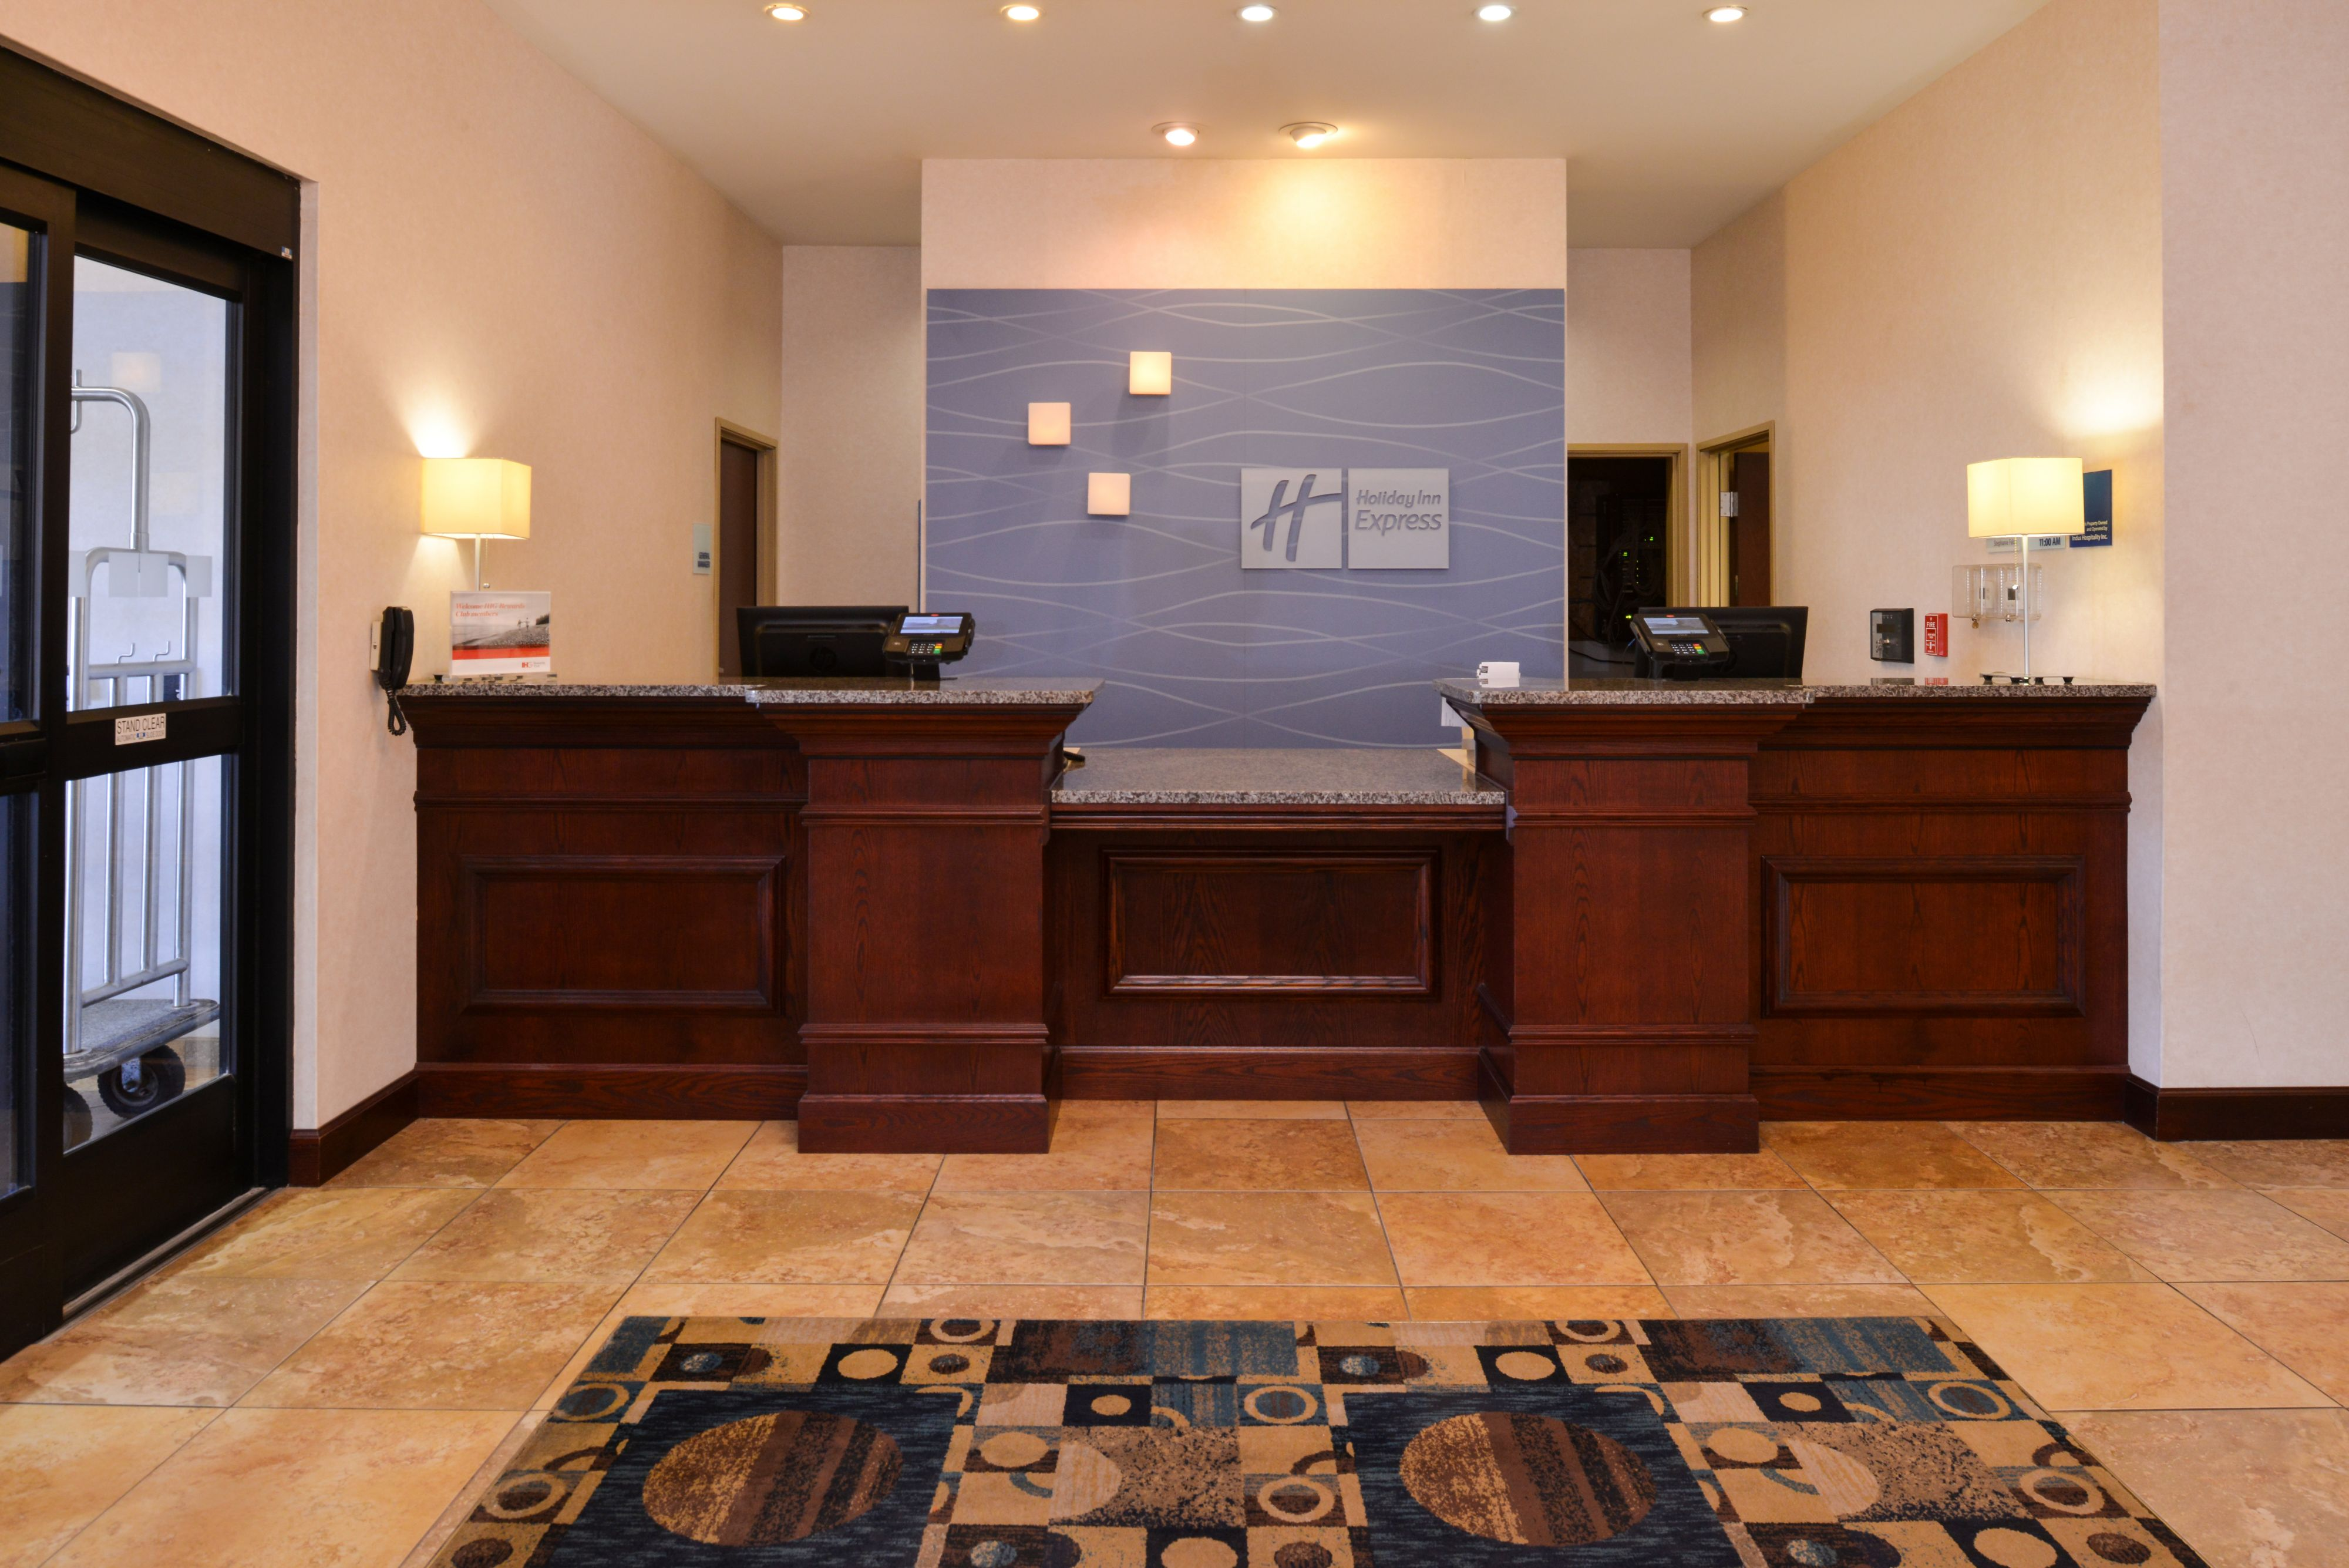 Holiday Inn Express & Suites White Haven - Poconos image 10